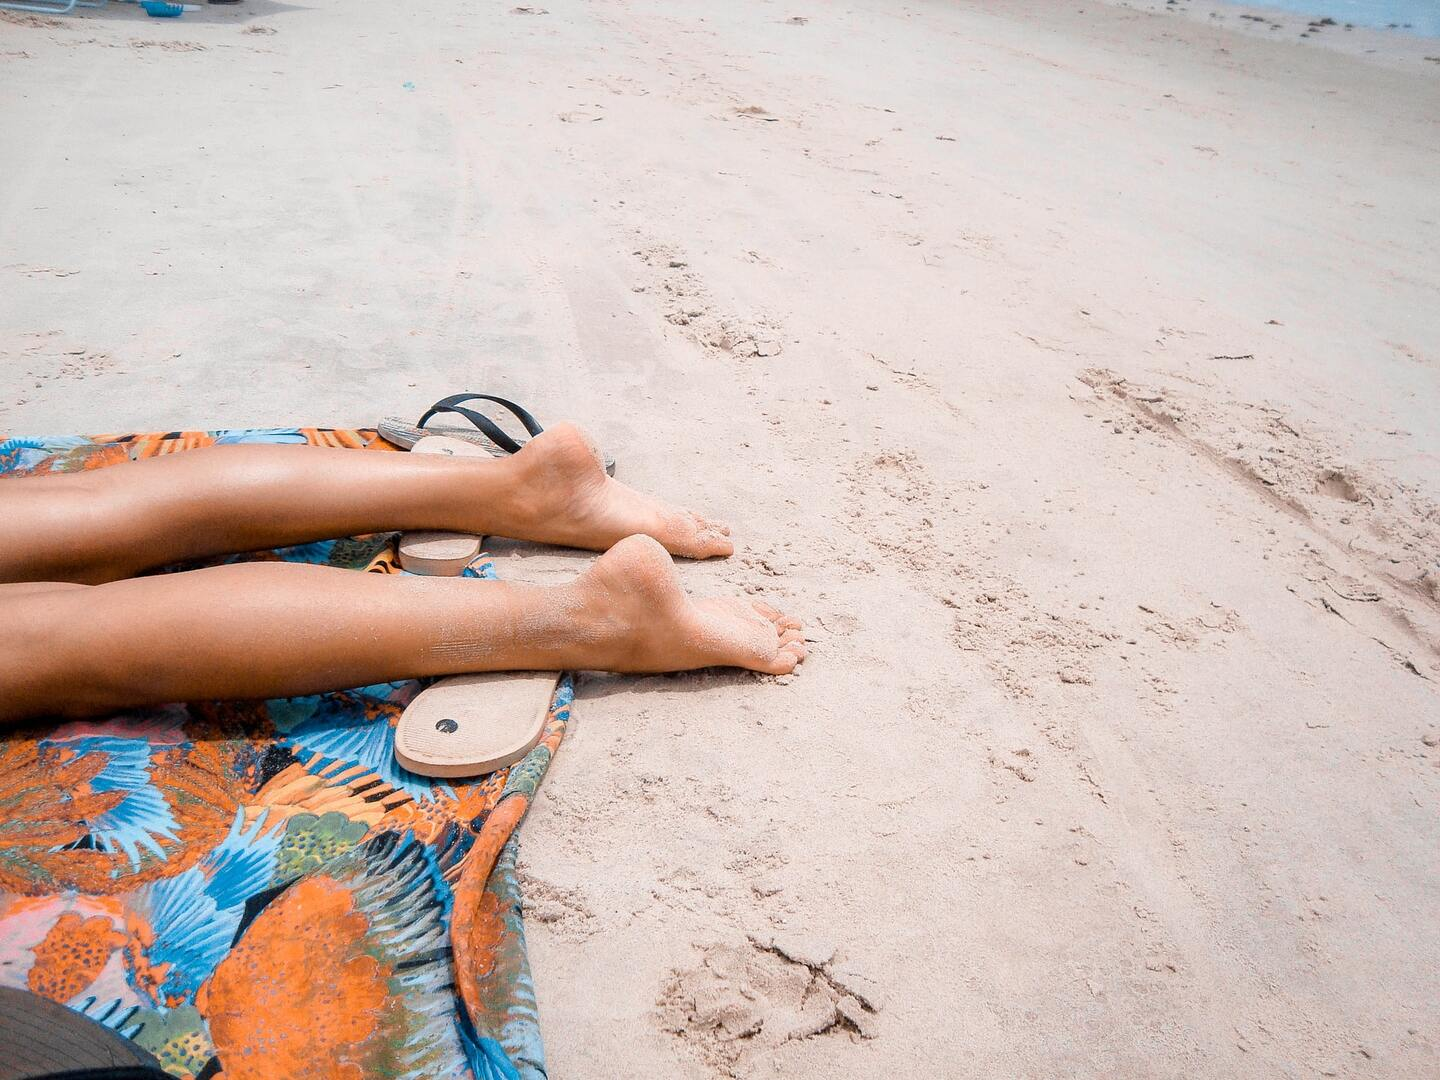 legs of a woman and sandals on the ground